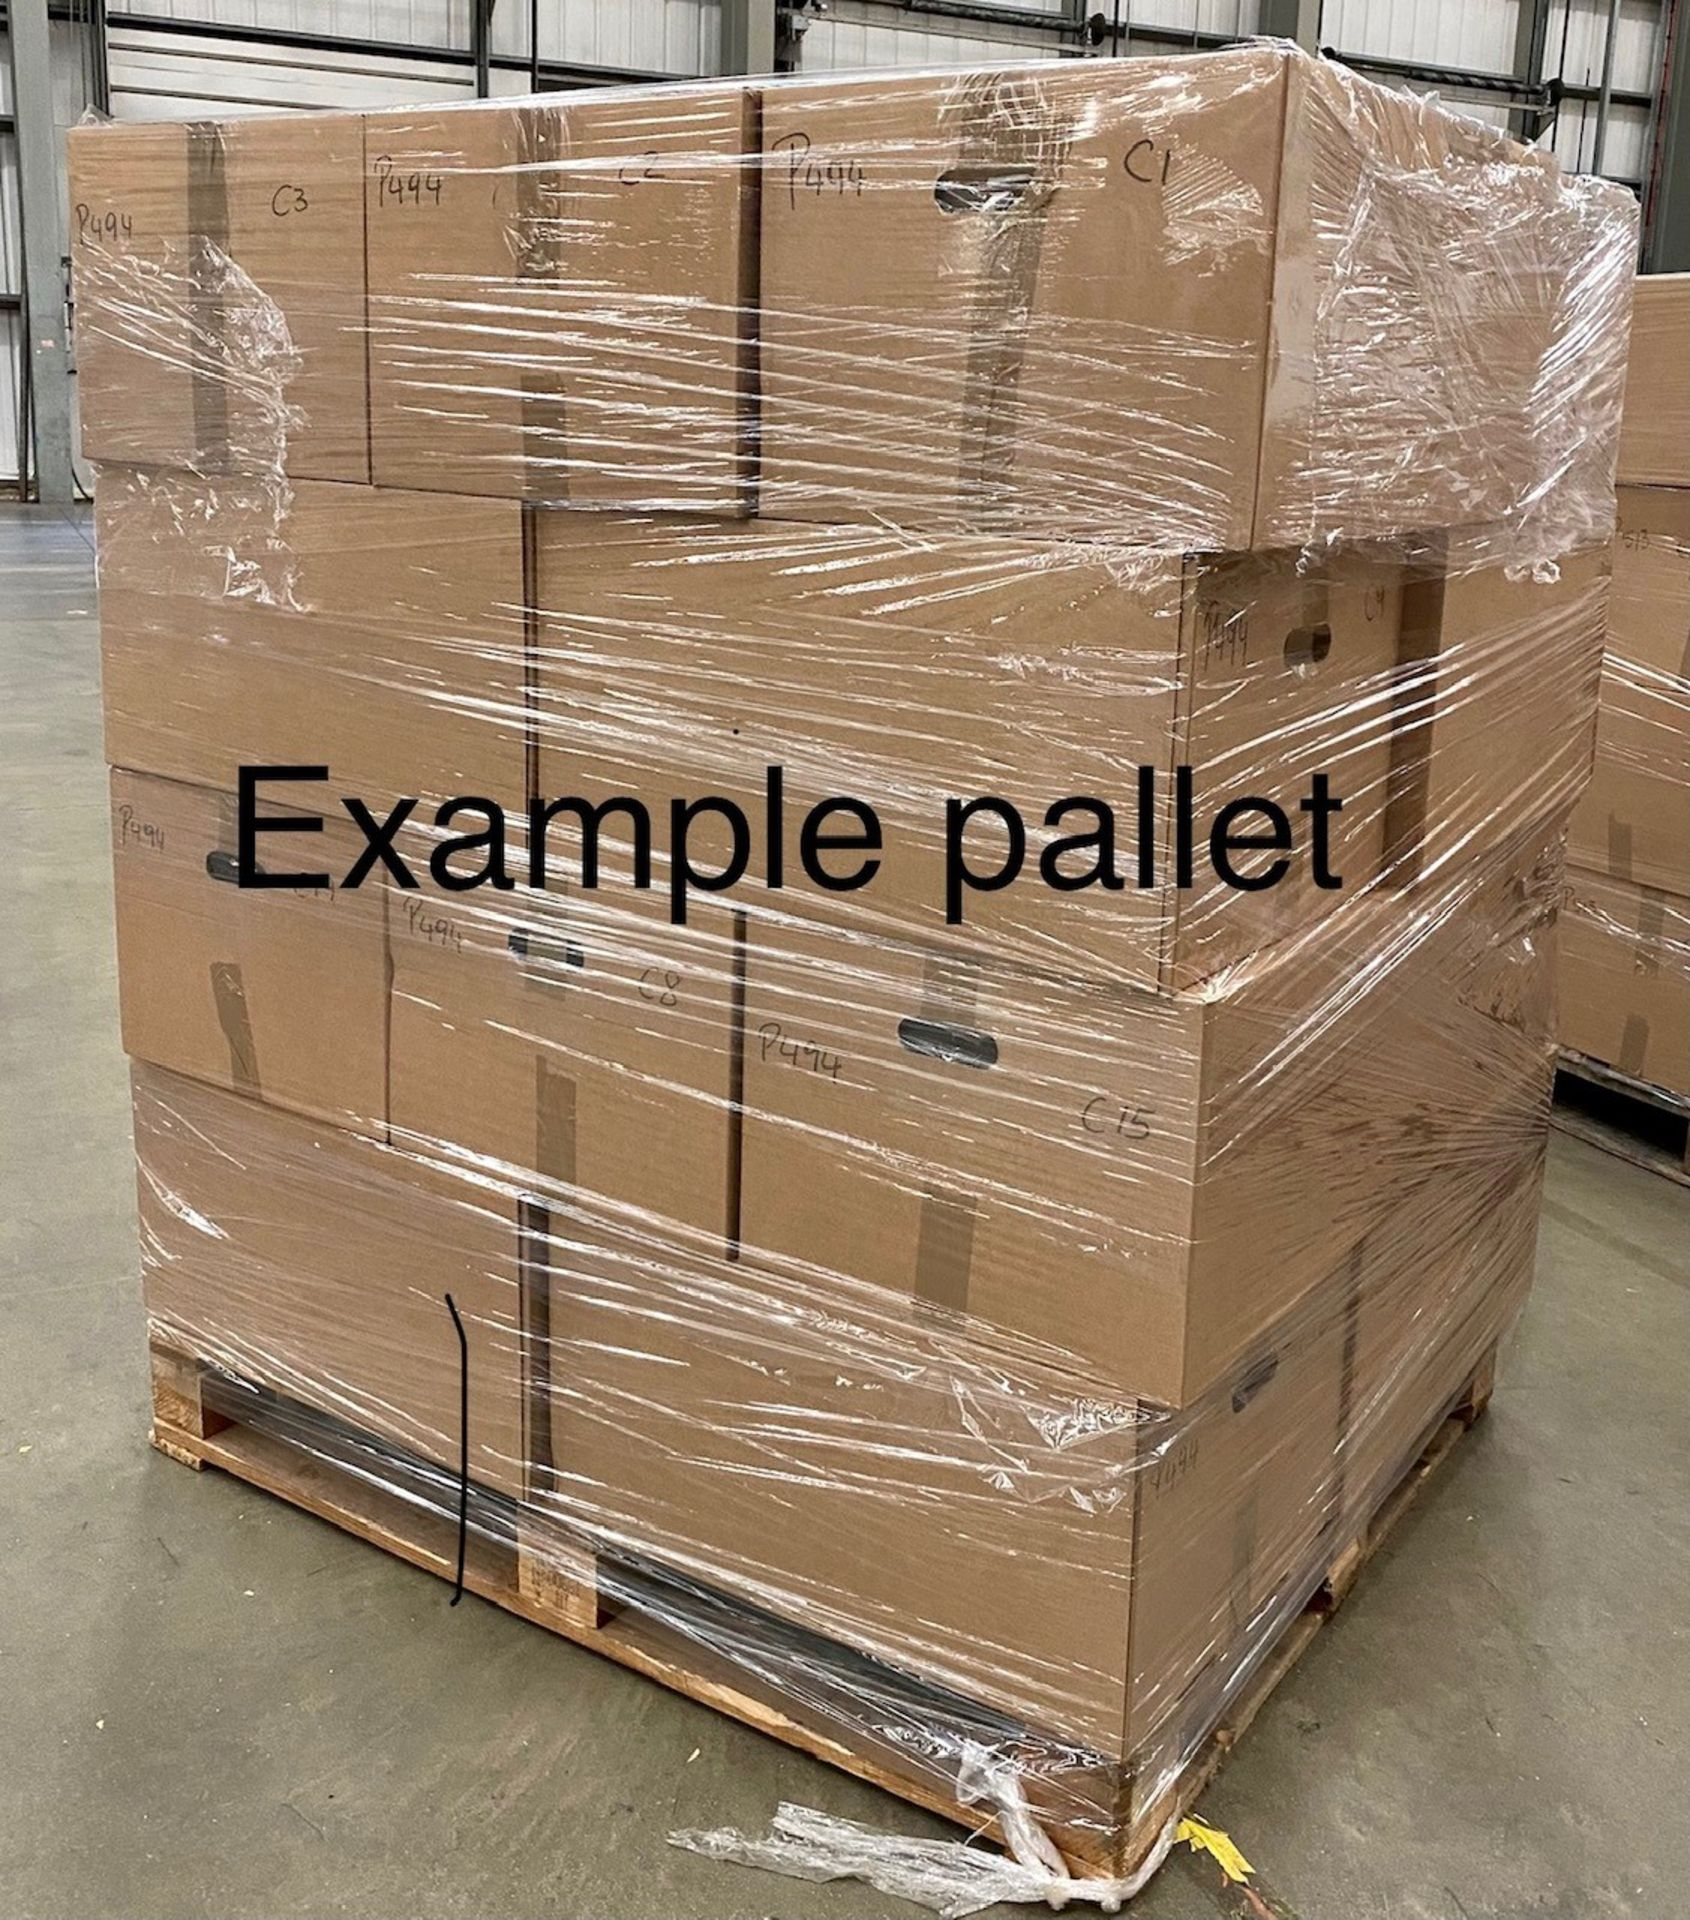 1 x mixed pallet = 124 items of Grade A M&S Womenswear Clothing. Total RRP £4363.00 - Image 6 of 6